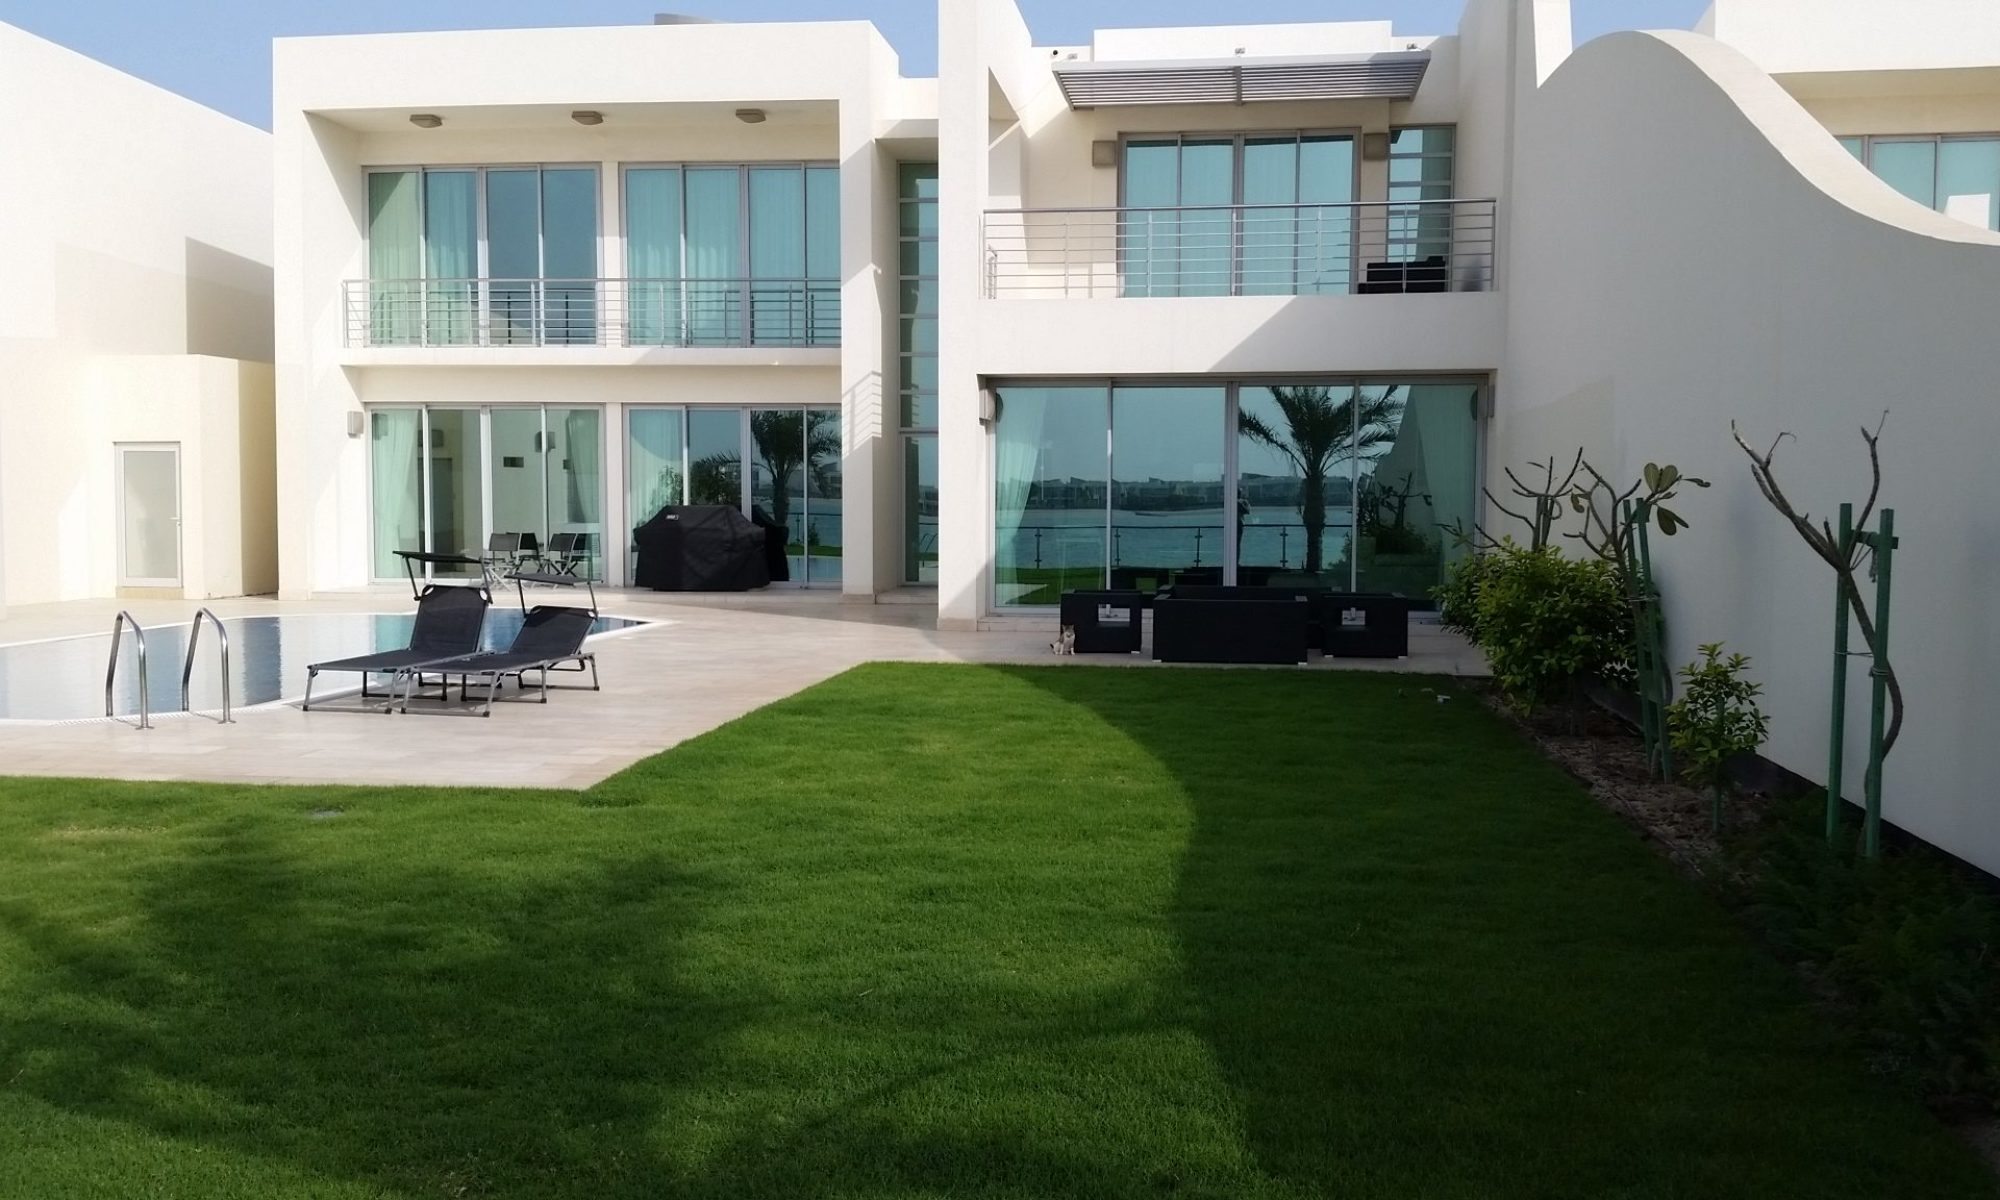 Durrat al Bahrain - Beach-Villa for Sale: 465,000 BD